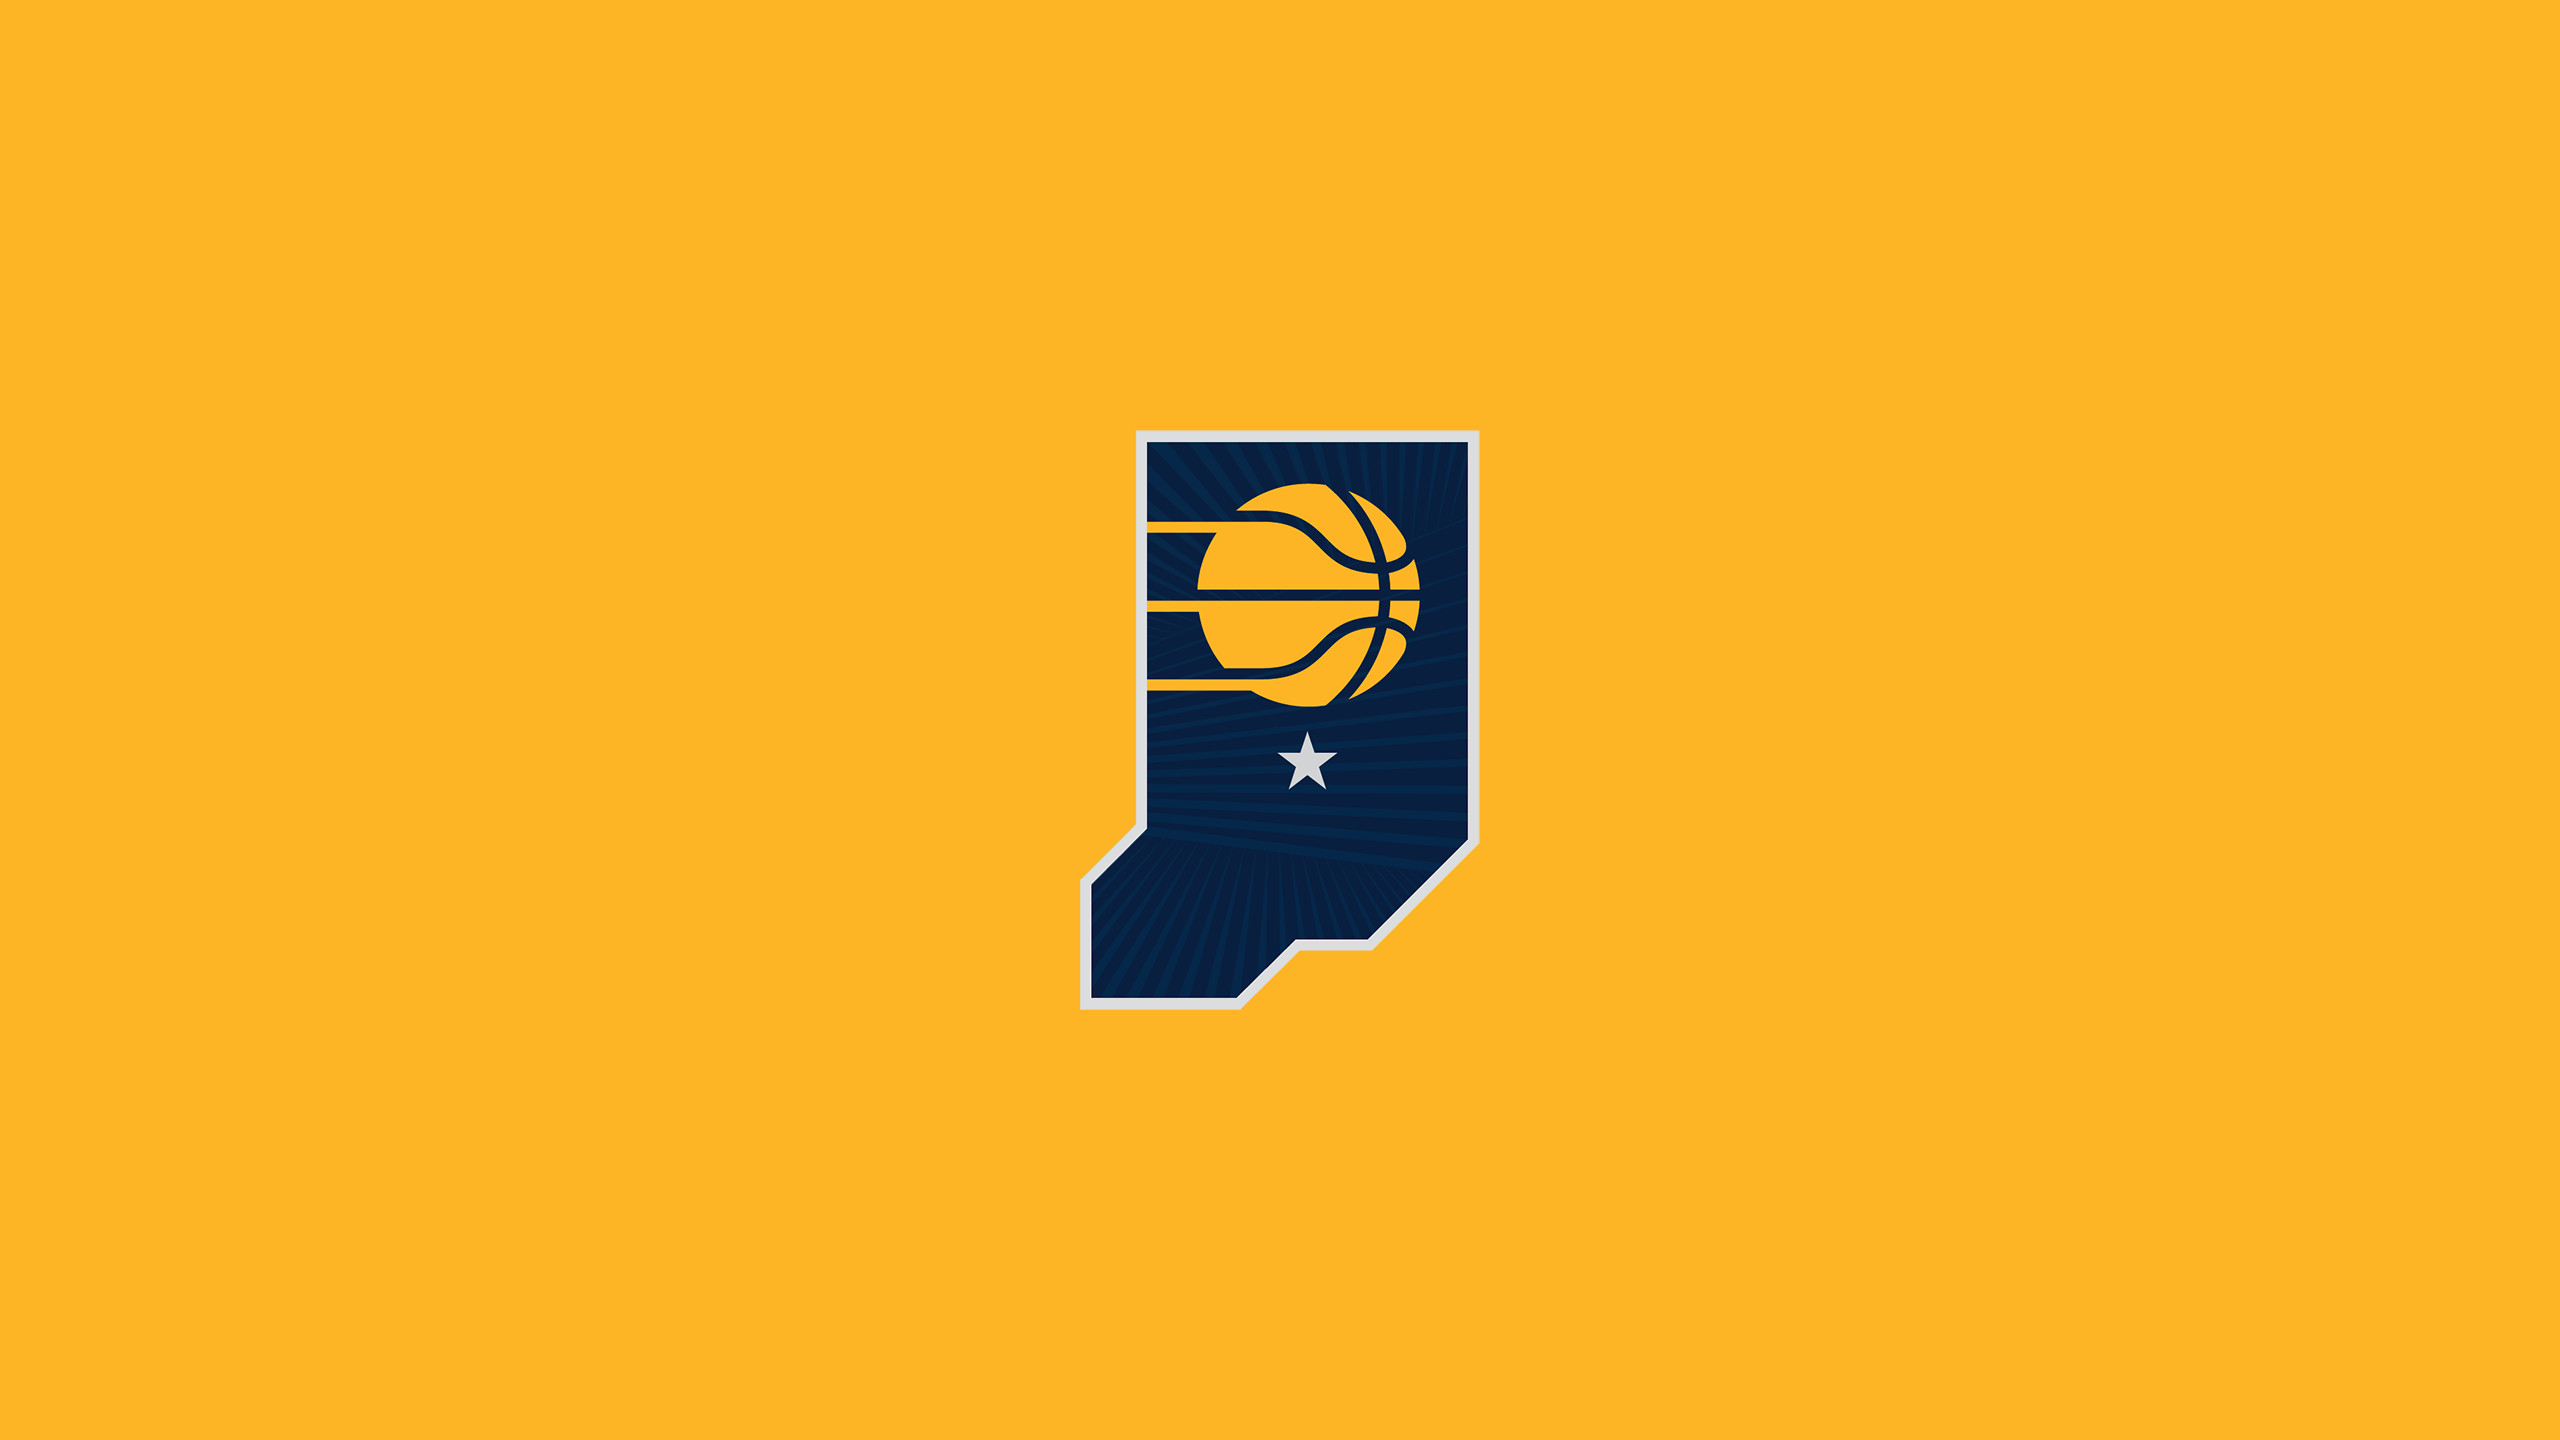 Indiana Pacers (Alternate)